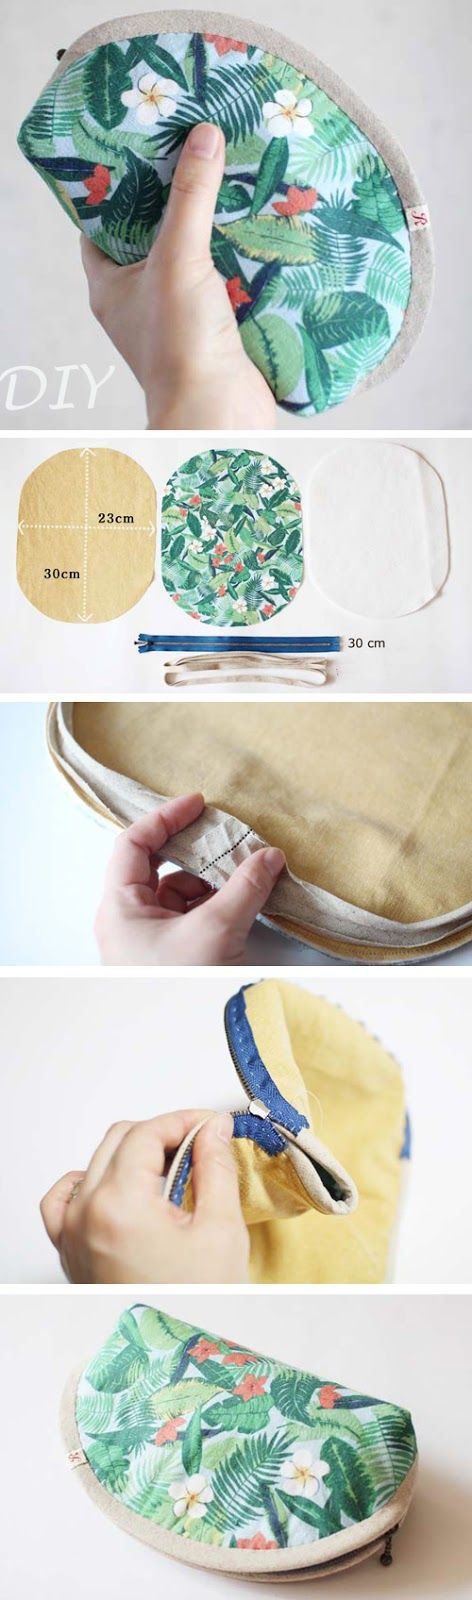 Small Makeup Bag.  Sewing Pattern & Photo Tutorial   http://www.handmadiya.com/2016/07/small-makeup-bag-diy.html